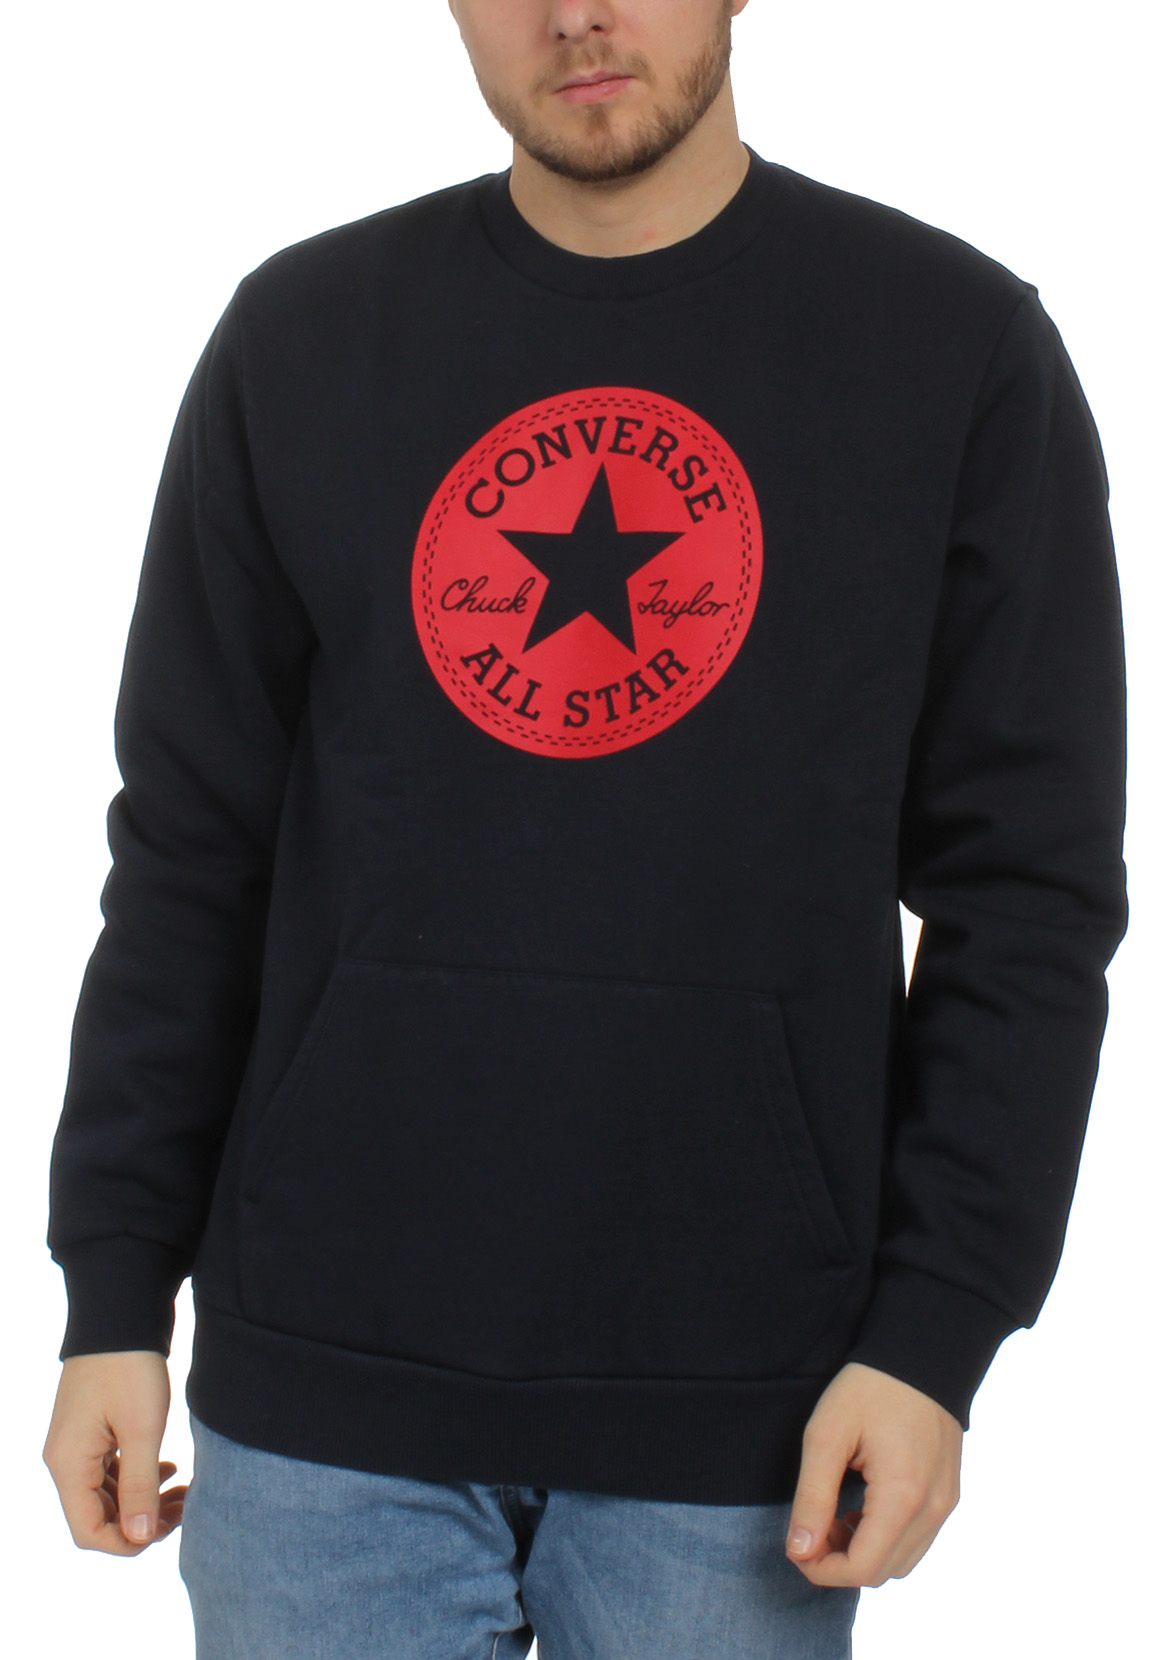 Details about Converse Men's Sweater Chuck Patch Graphic Crew 10005825 424 Navy